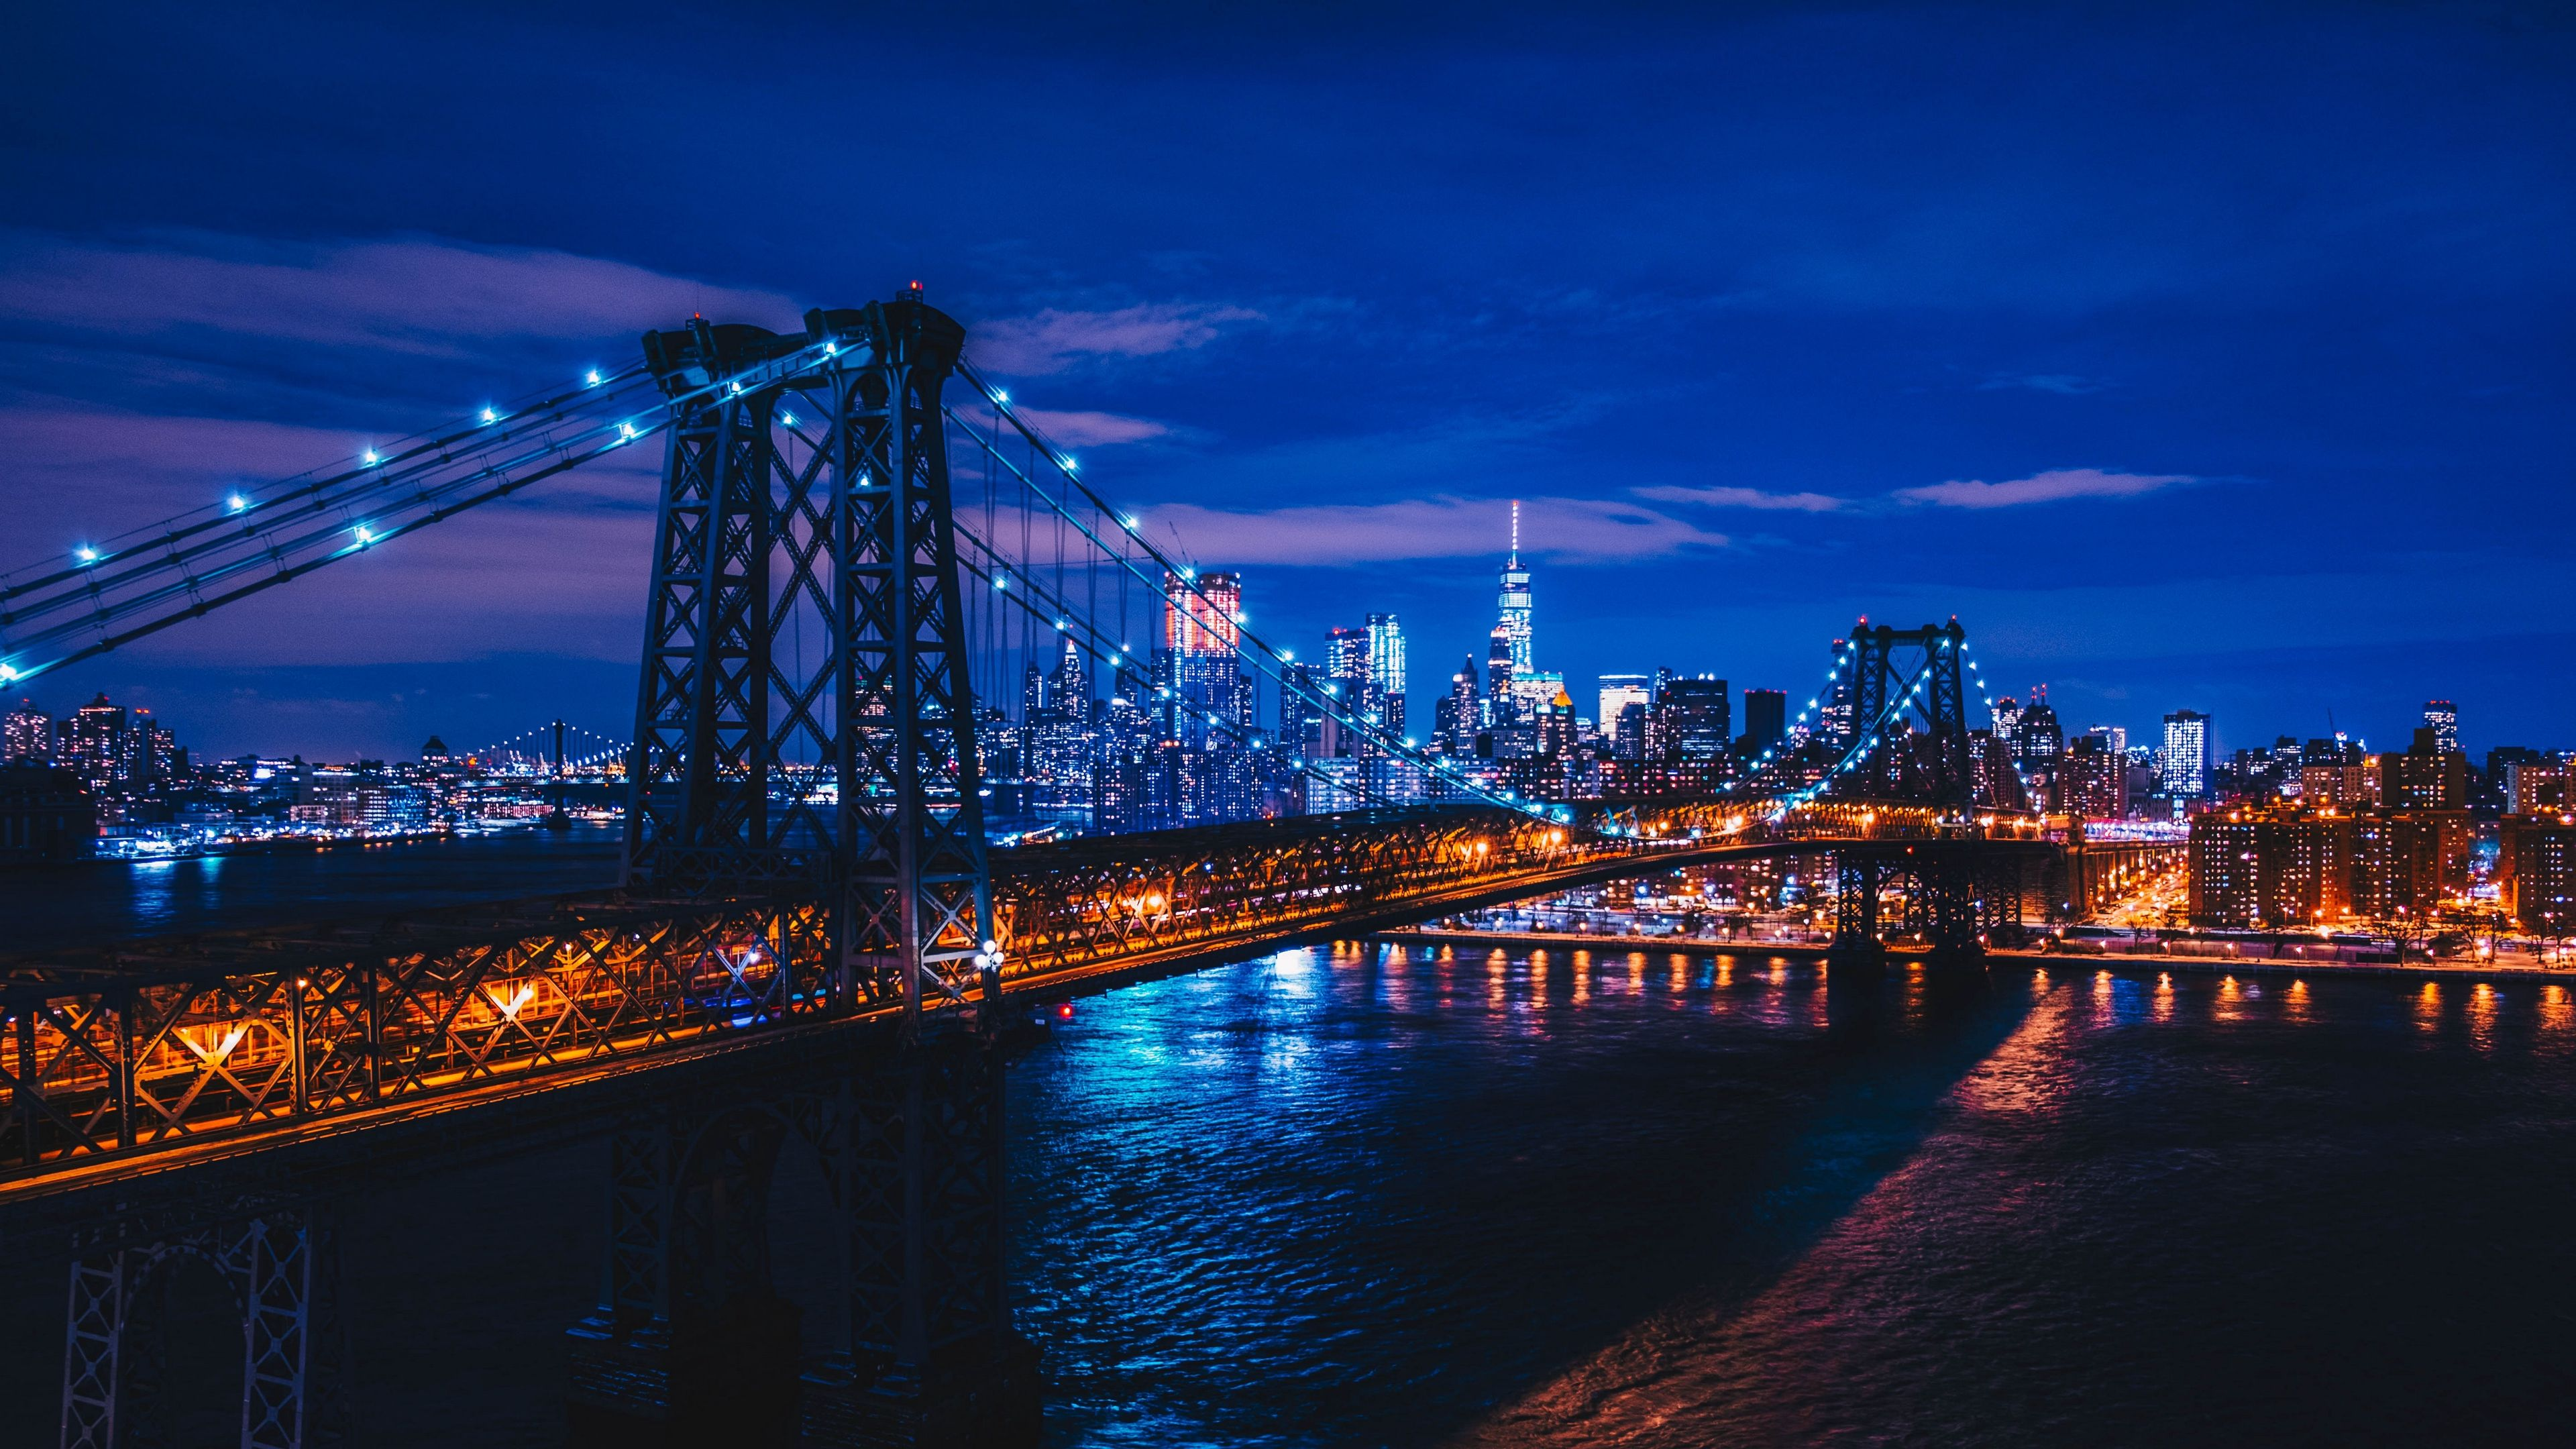 Download wallpaper 3840x2160 new york, usa, night city